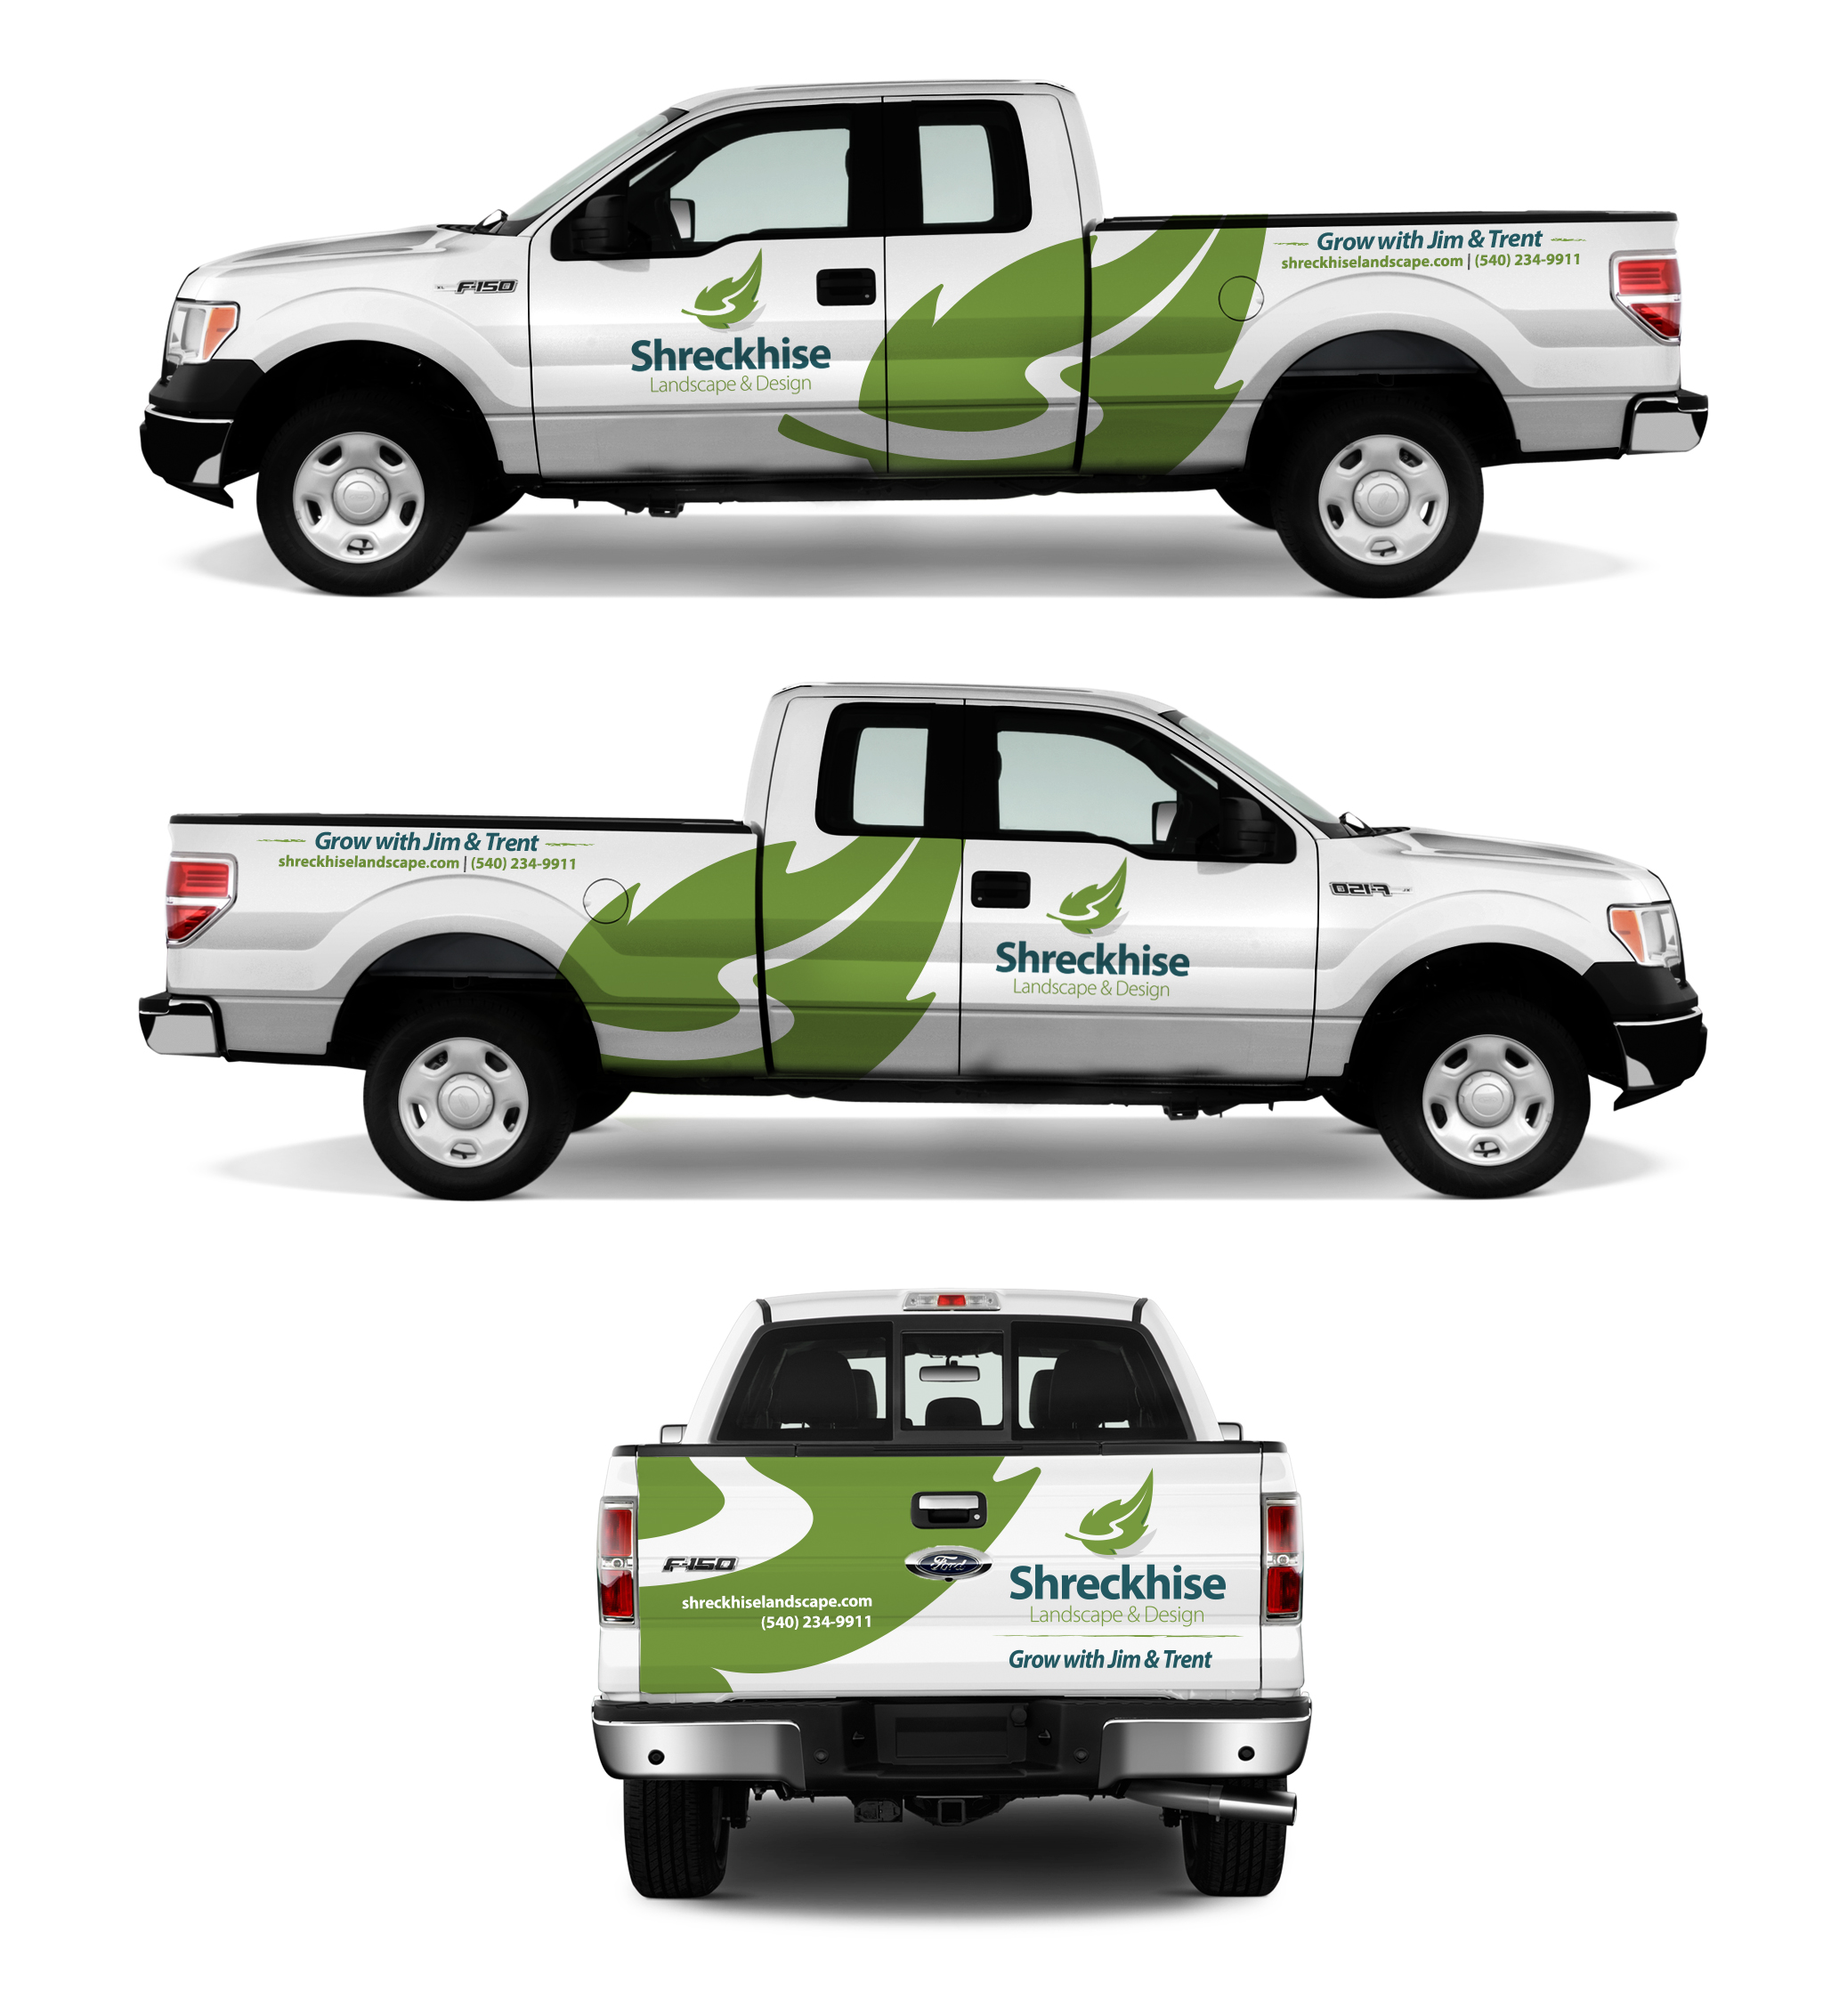 shreckhise vehicle graphics design